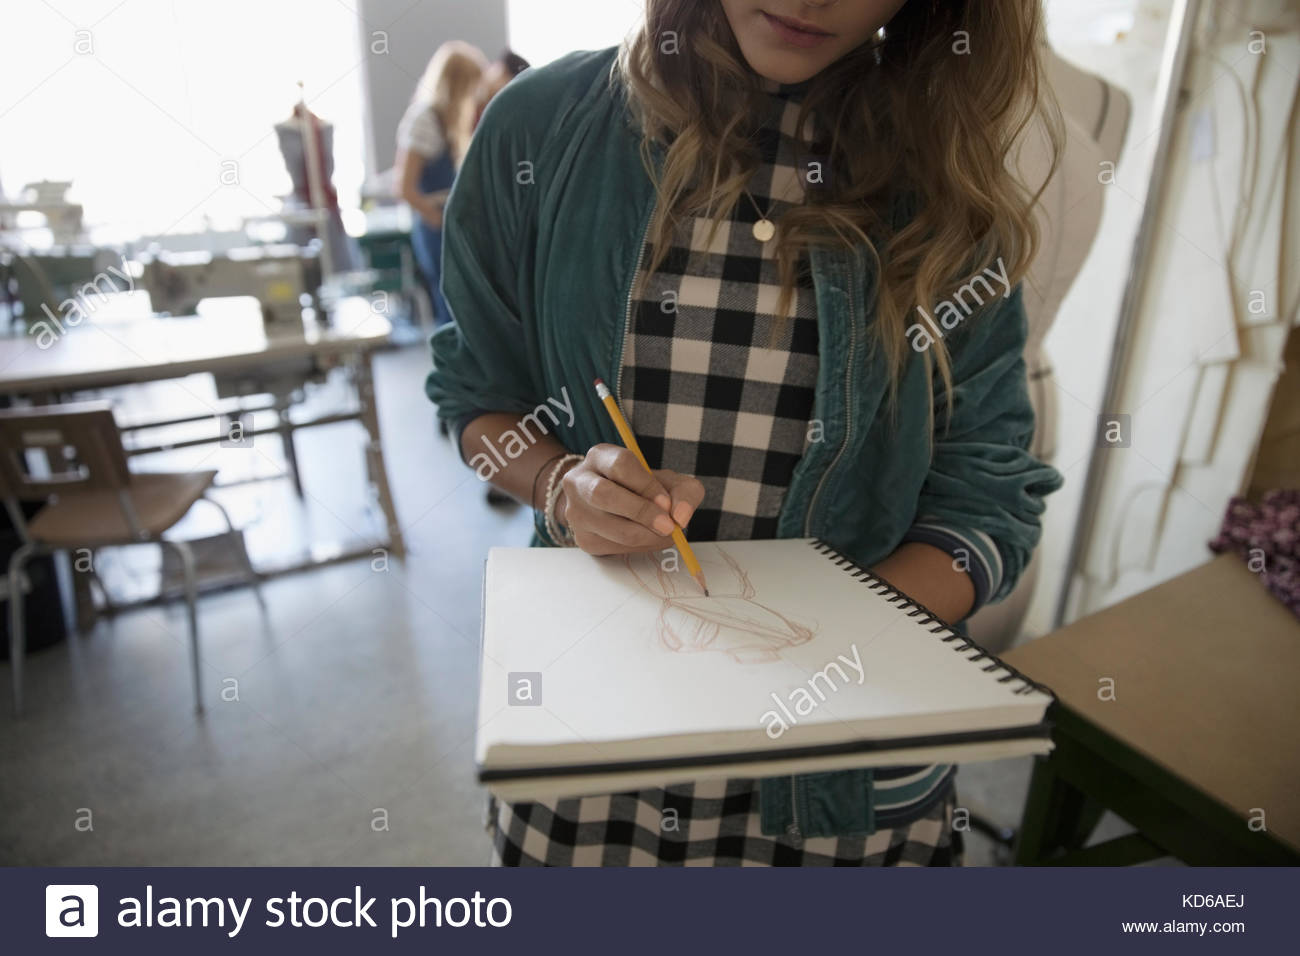 Design de mode féminine de l'ordinateur portable en train de dessiner des étudiants Photo Stock